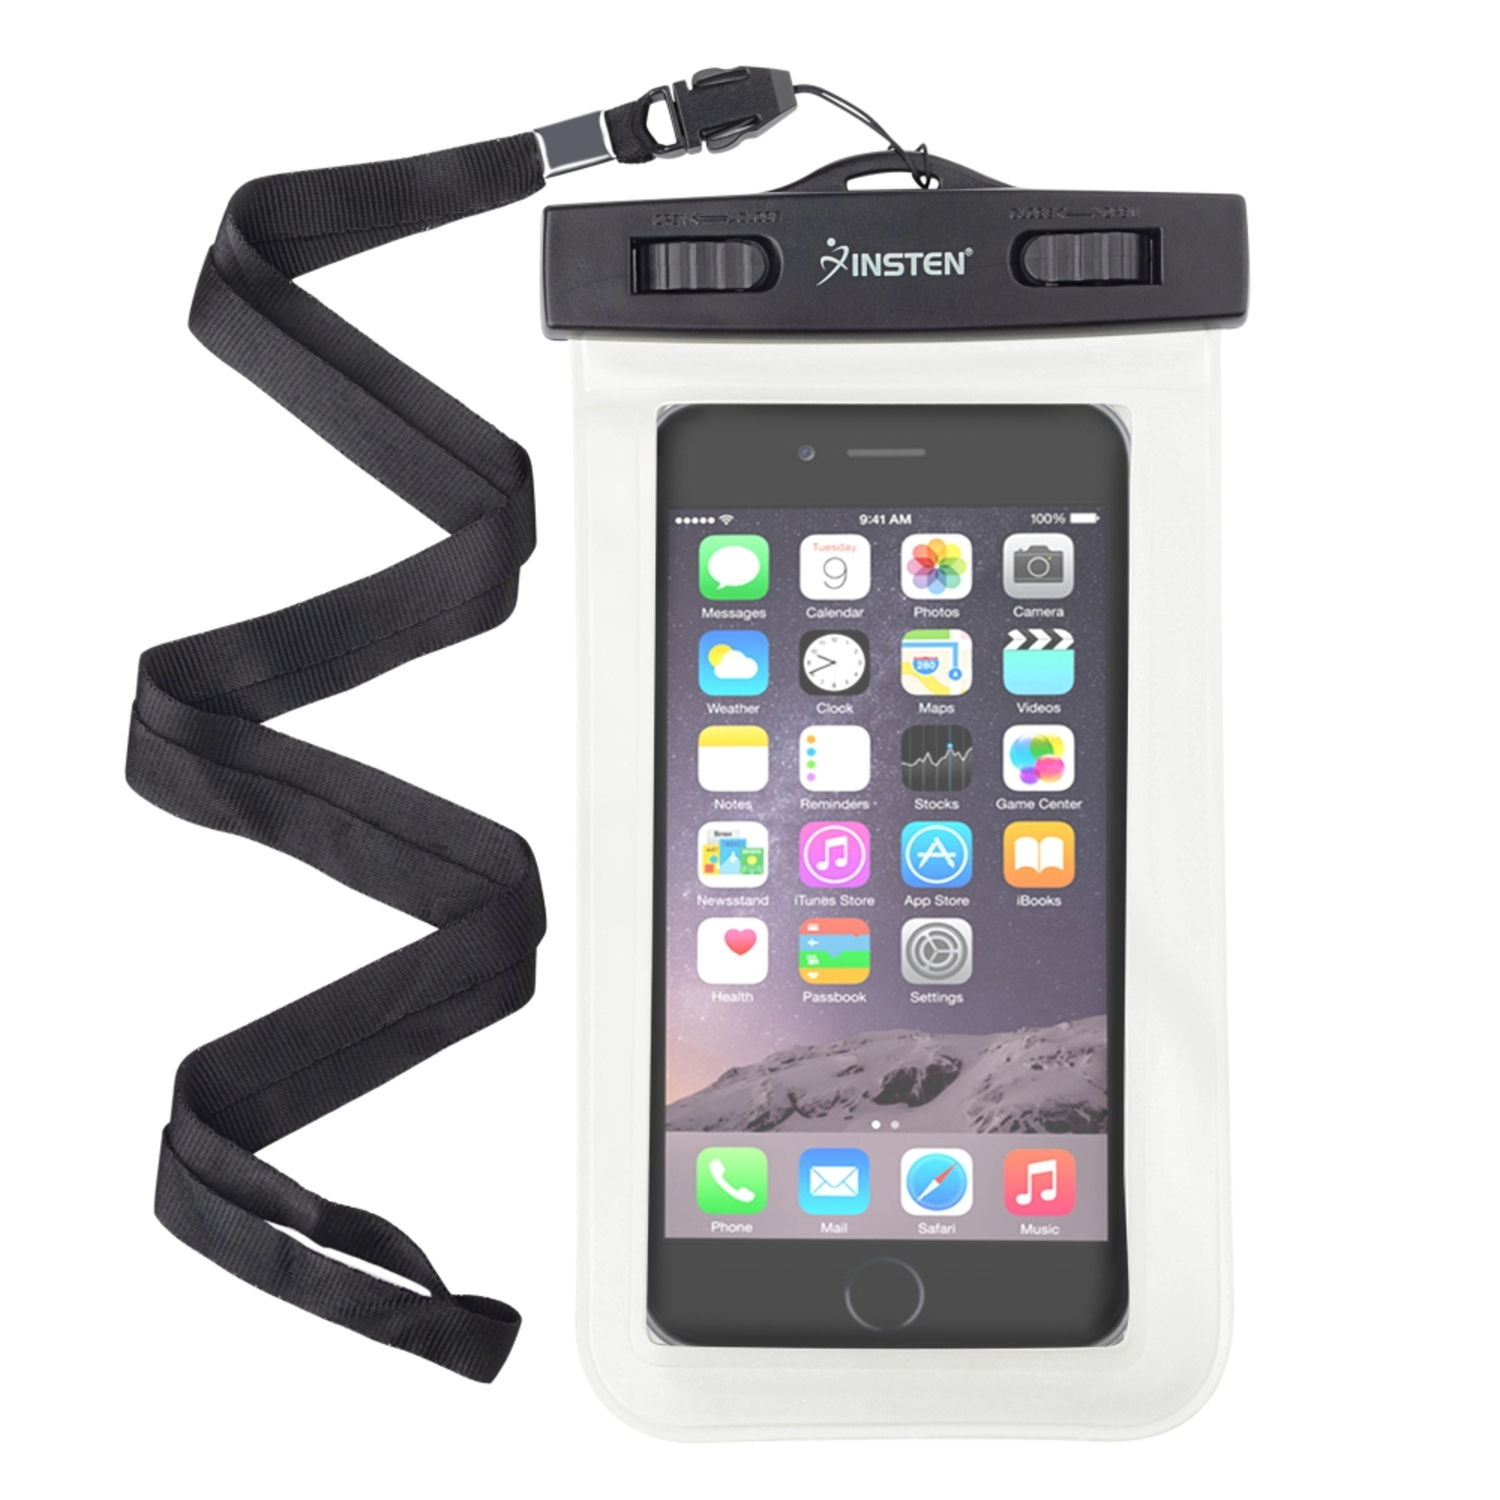 Insten White Waterproof Bag Carrying Case Pouch (6.5 x 3.9 inch) with Lanyard & Armband for iPhone 7 6s Plus 6 5s Samsung Core Grand Prime S7 S6 S5 Note 5 LG K7 G Stylo Leon Universal - up to 3 meter